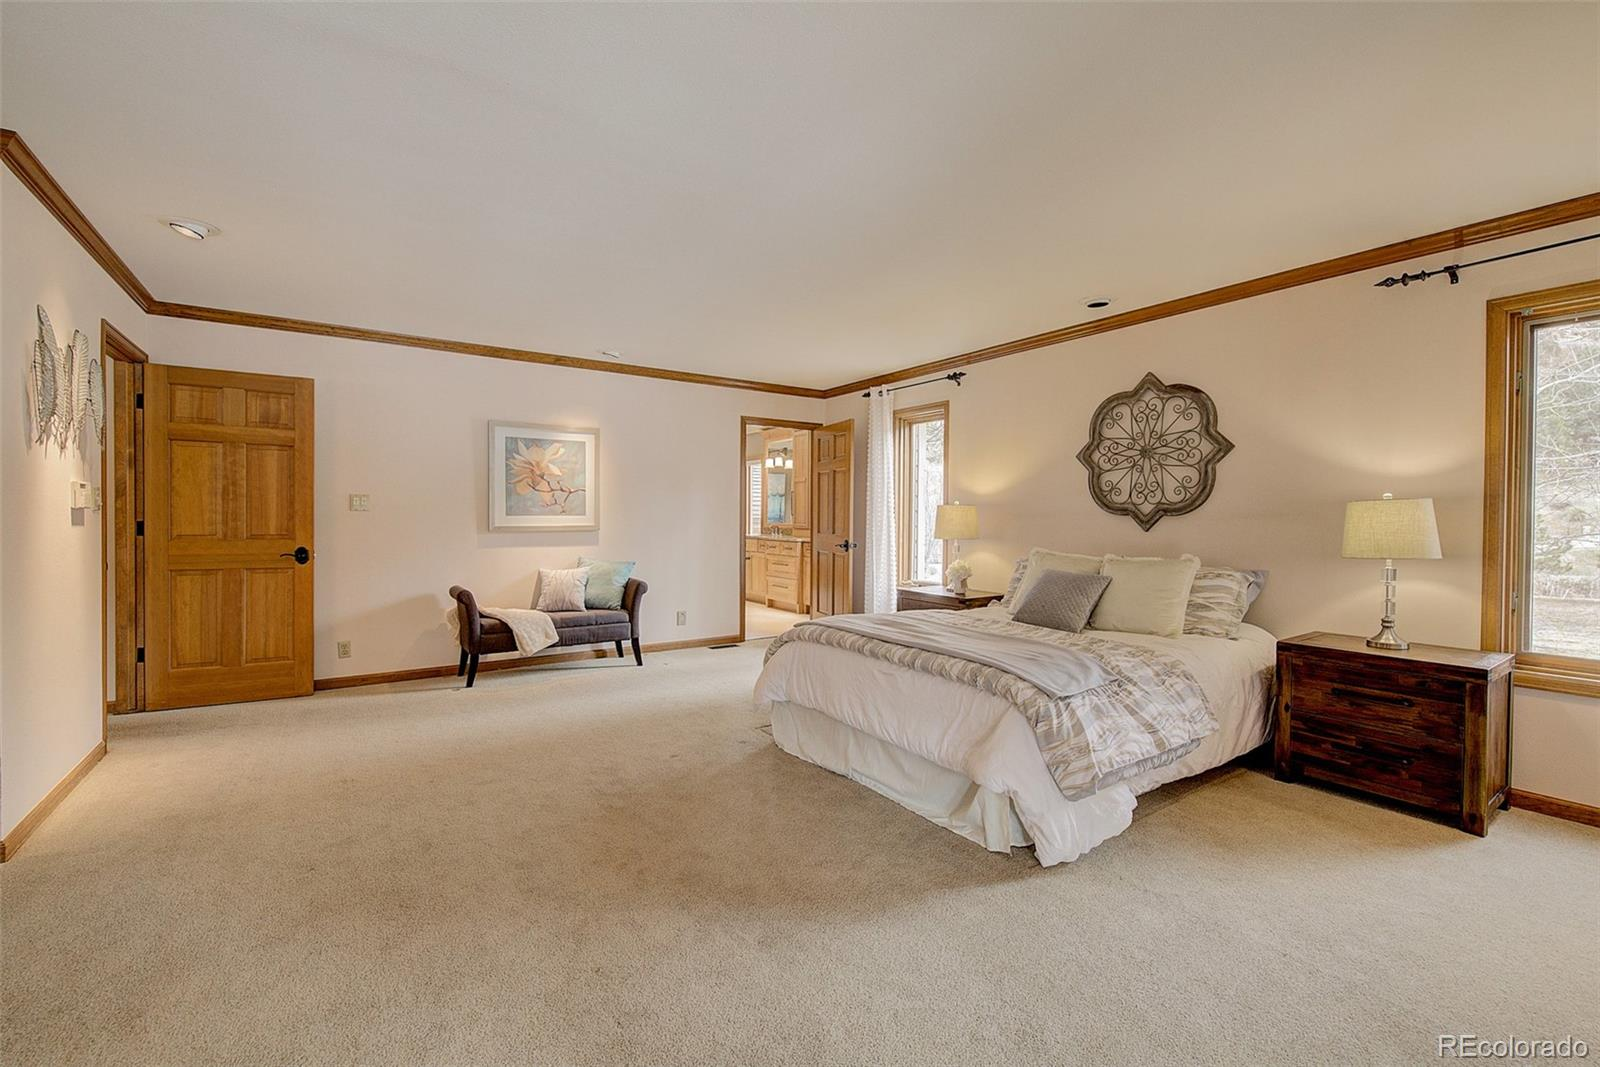 MLS# 9665076 - 20 - 5843 Willowbrook Drive, Morrison, CO 80465